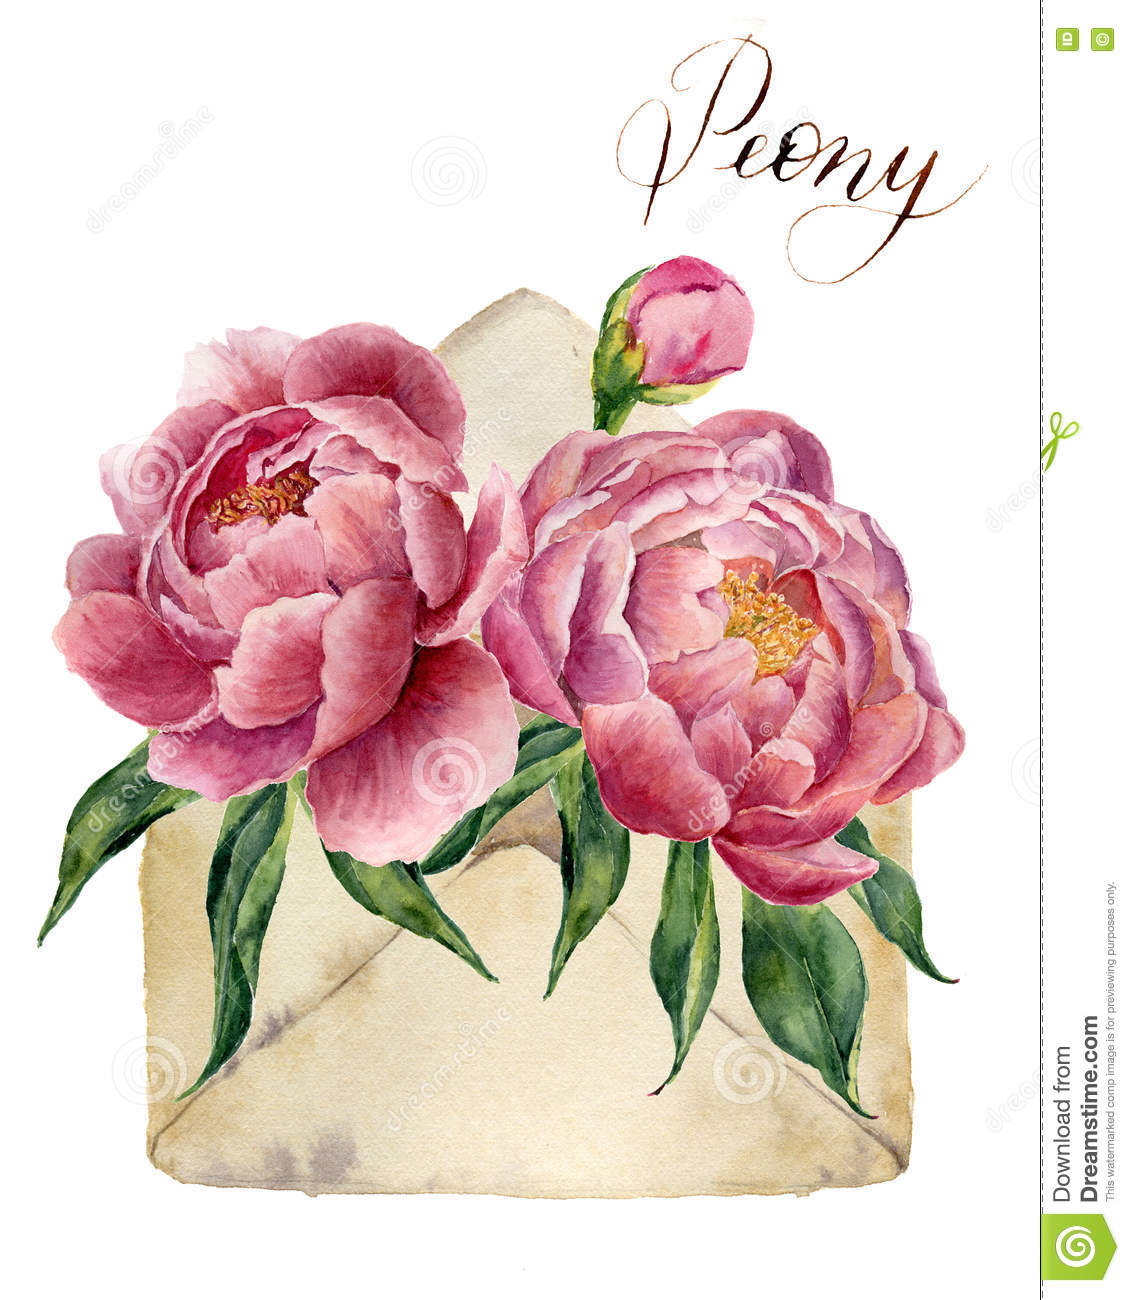 Watercolor peonies bouquet with retro envelope. Vintage mail icon with floral illustration isolated on white background